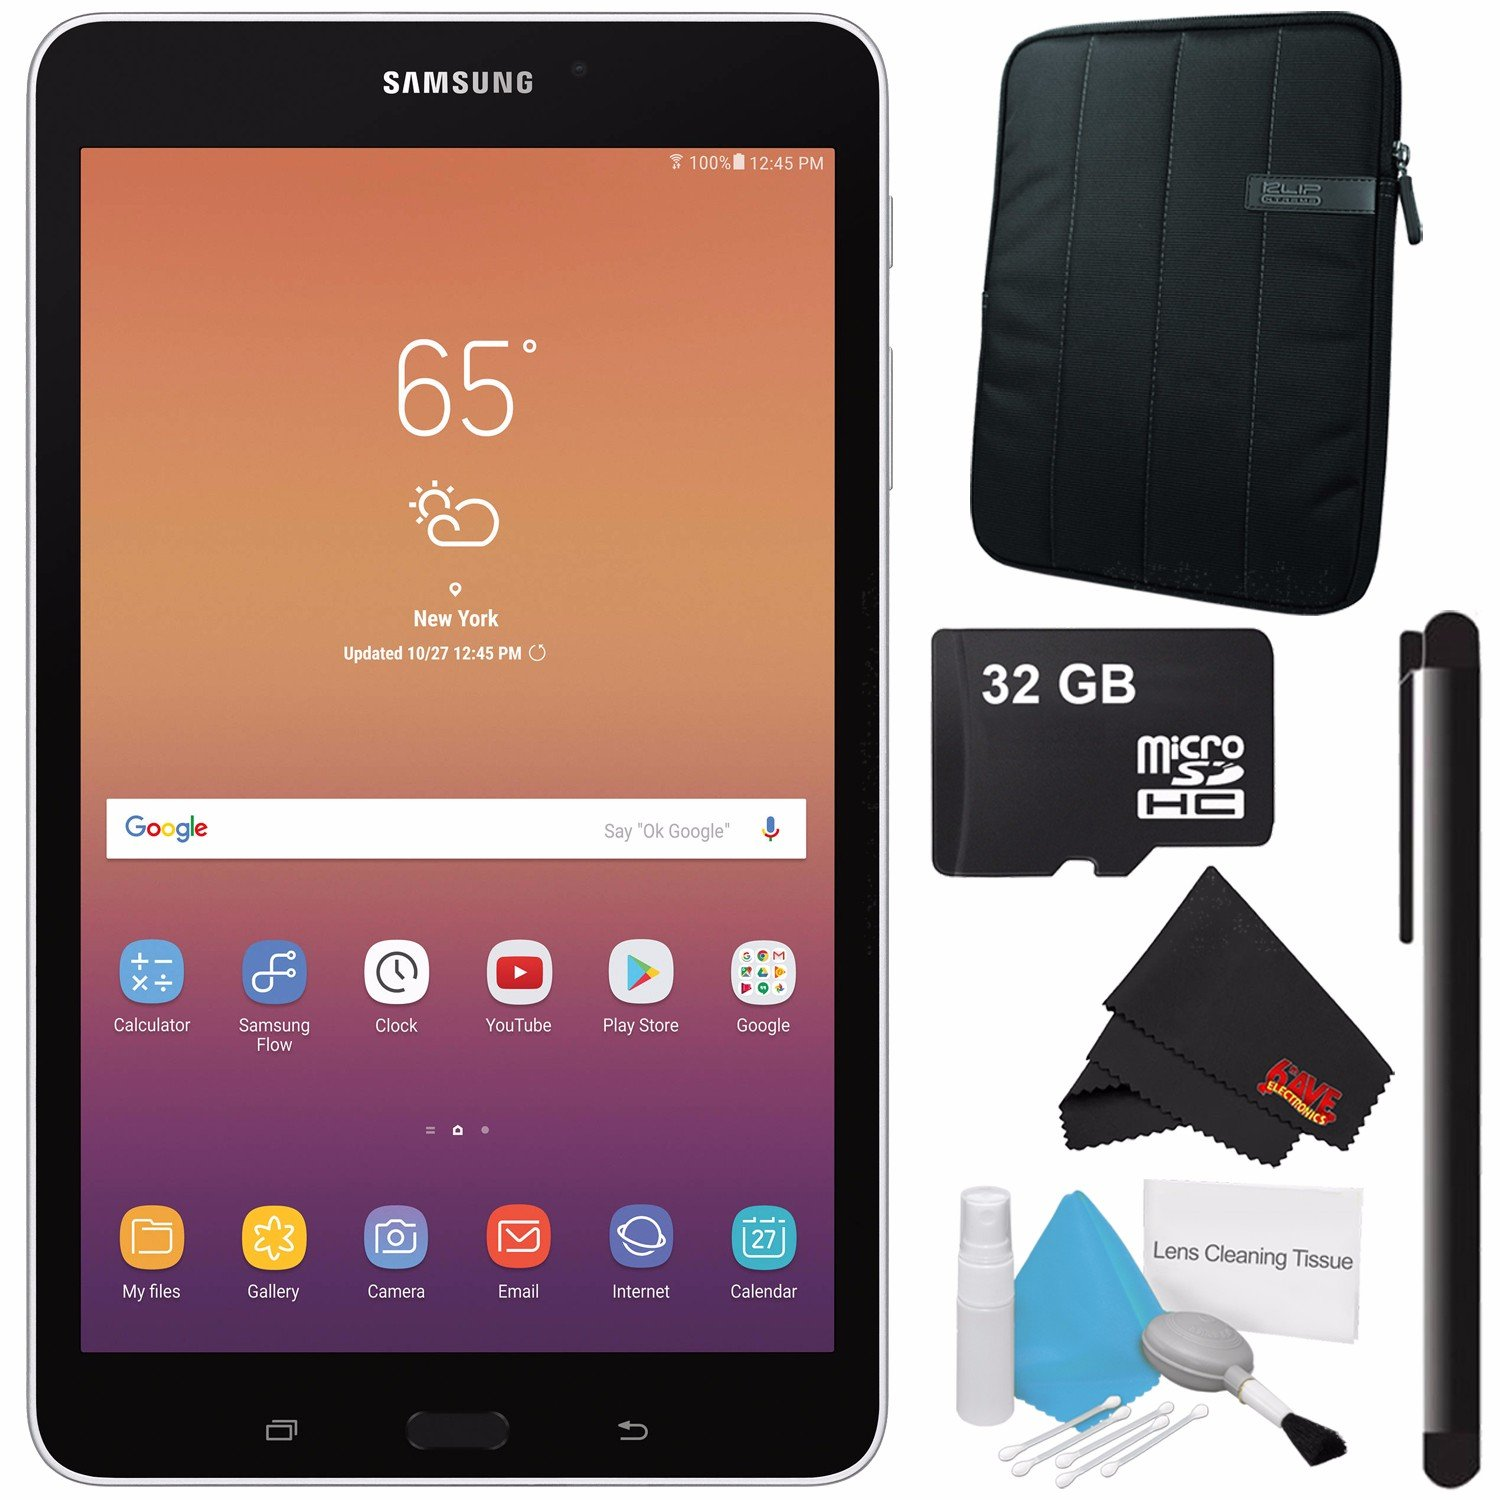 Samsung 8.0'' Galaxy Tab A 8.0 32GB Tablet (Wi-Fi Only, Silver) SM-T380NZSEXAR + Universal Stylus for Tablets + Tablet Neoprene Sleeve 10.1'' Case (Black) + 32GB Class 10 Micro SD Memory Card Bundle